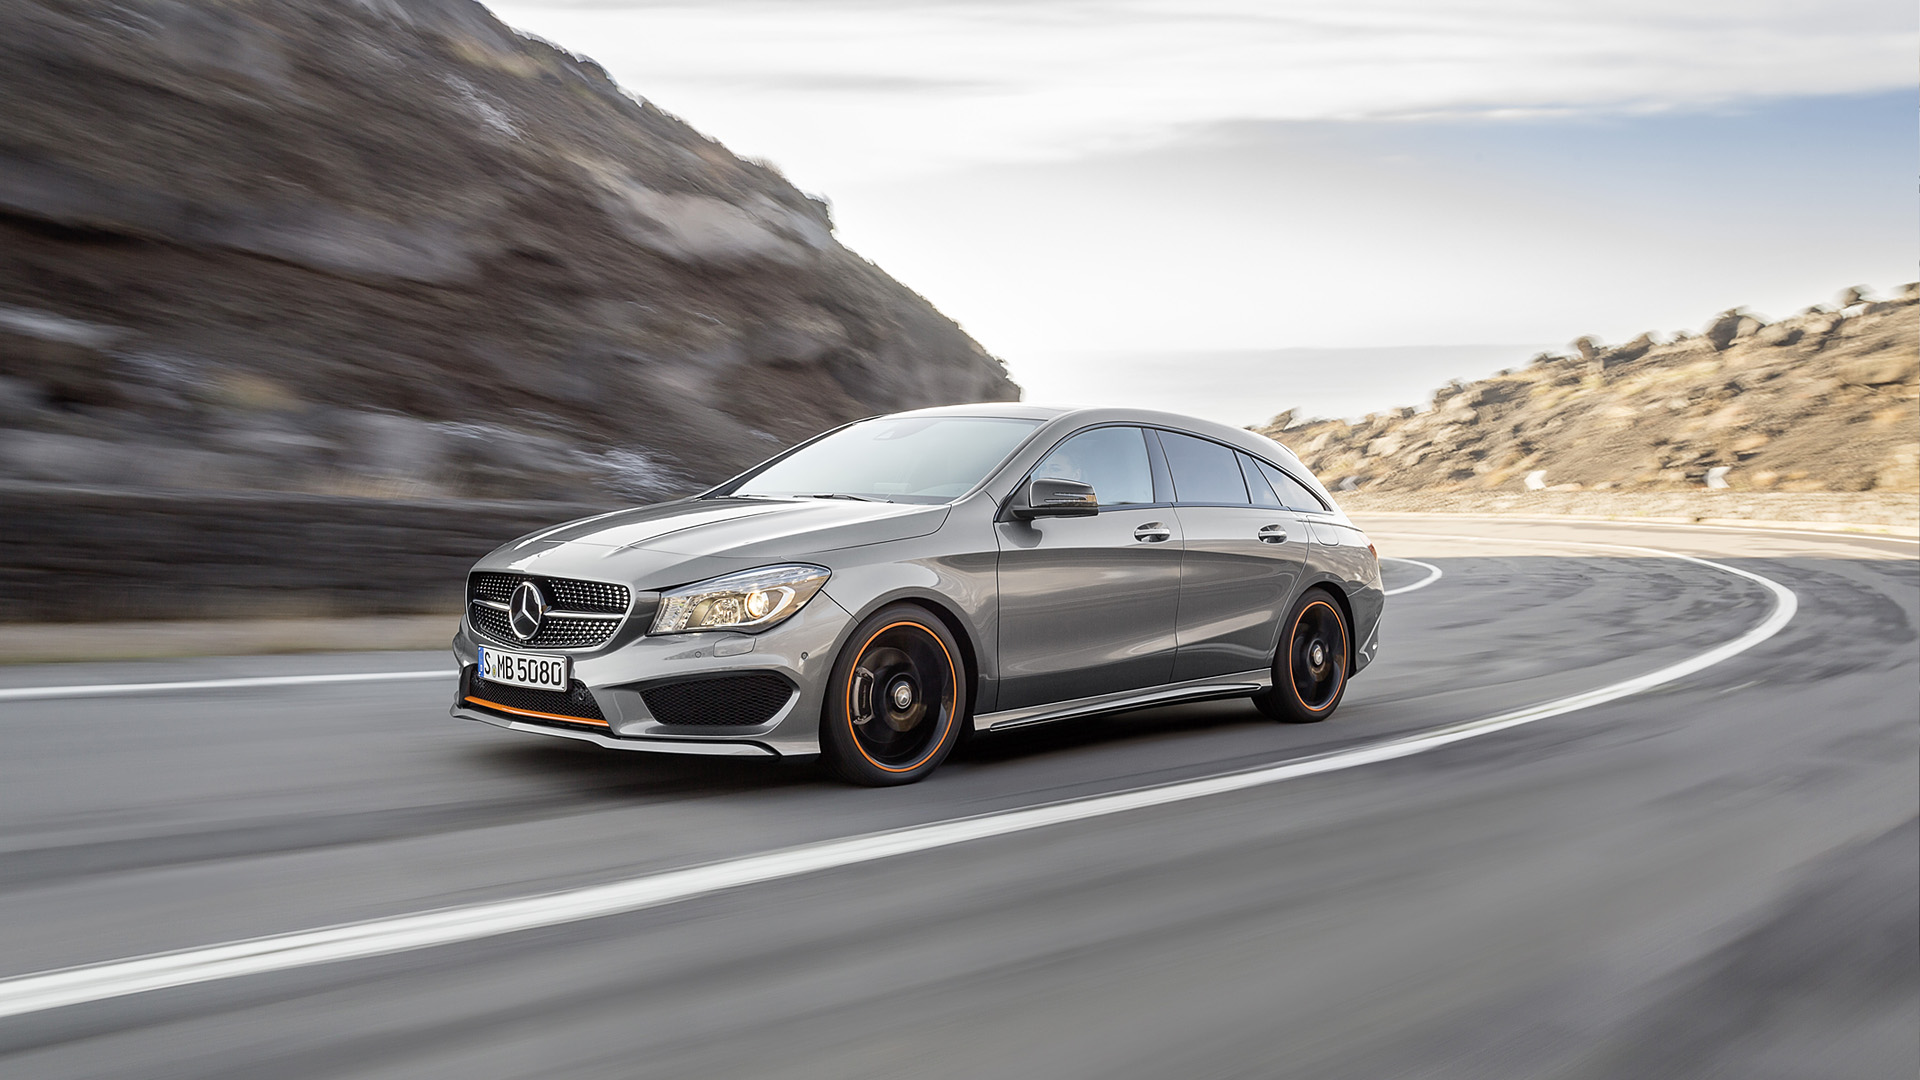 2016 Mercedes Benz CLA Shooting Brake Wallpapers HD Images 1920x1080